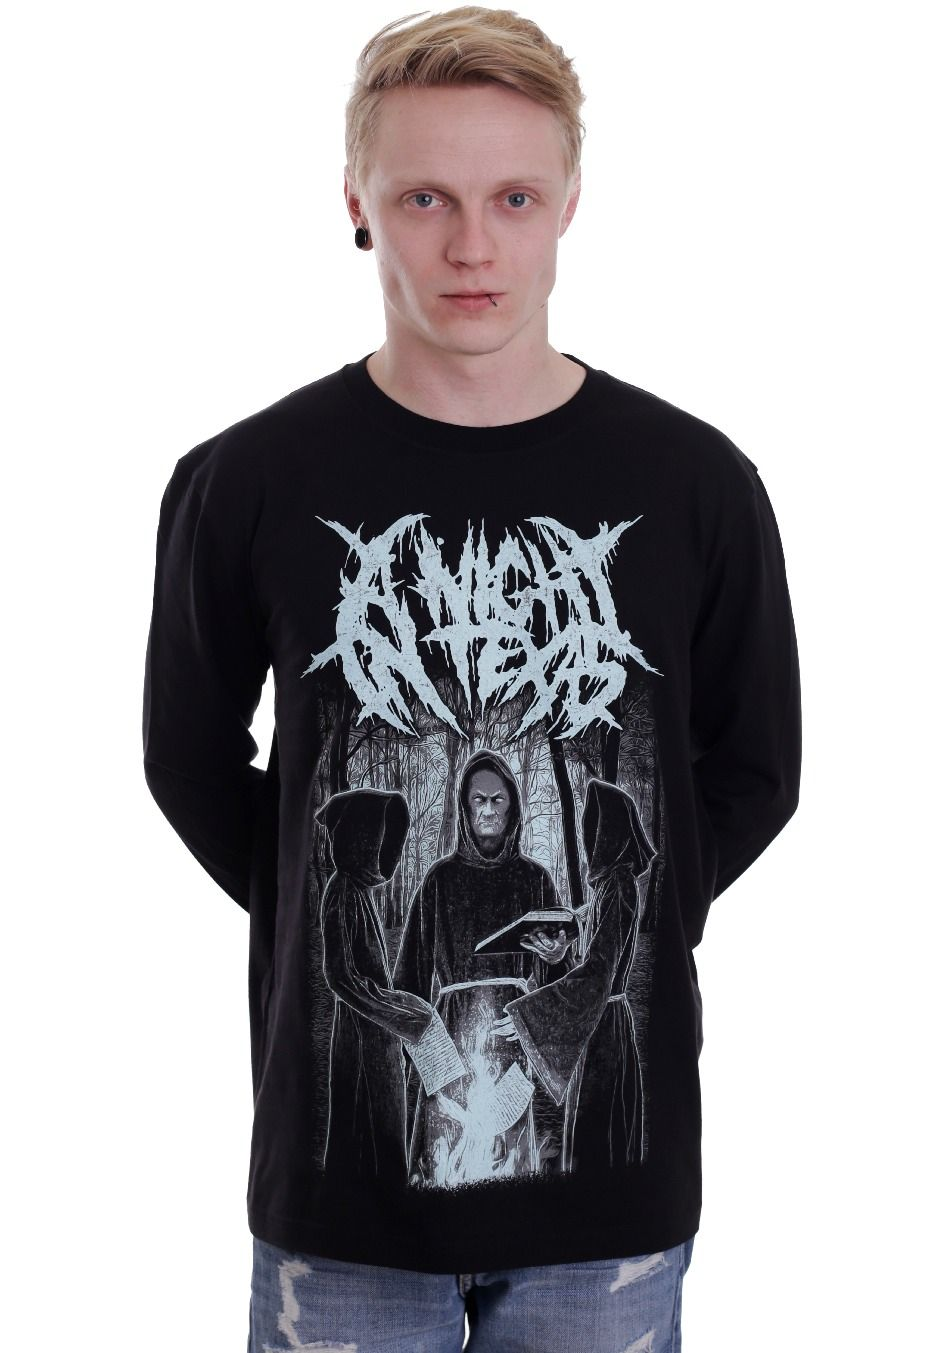 22155acd A Night In Texas - I Godless - Longsleeve - A Night In Texas - Official  Merch Store - Impericon.com UK